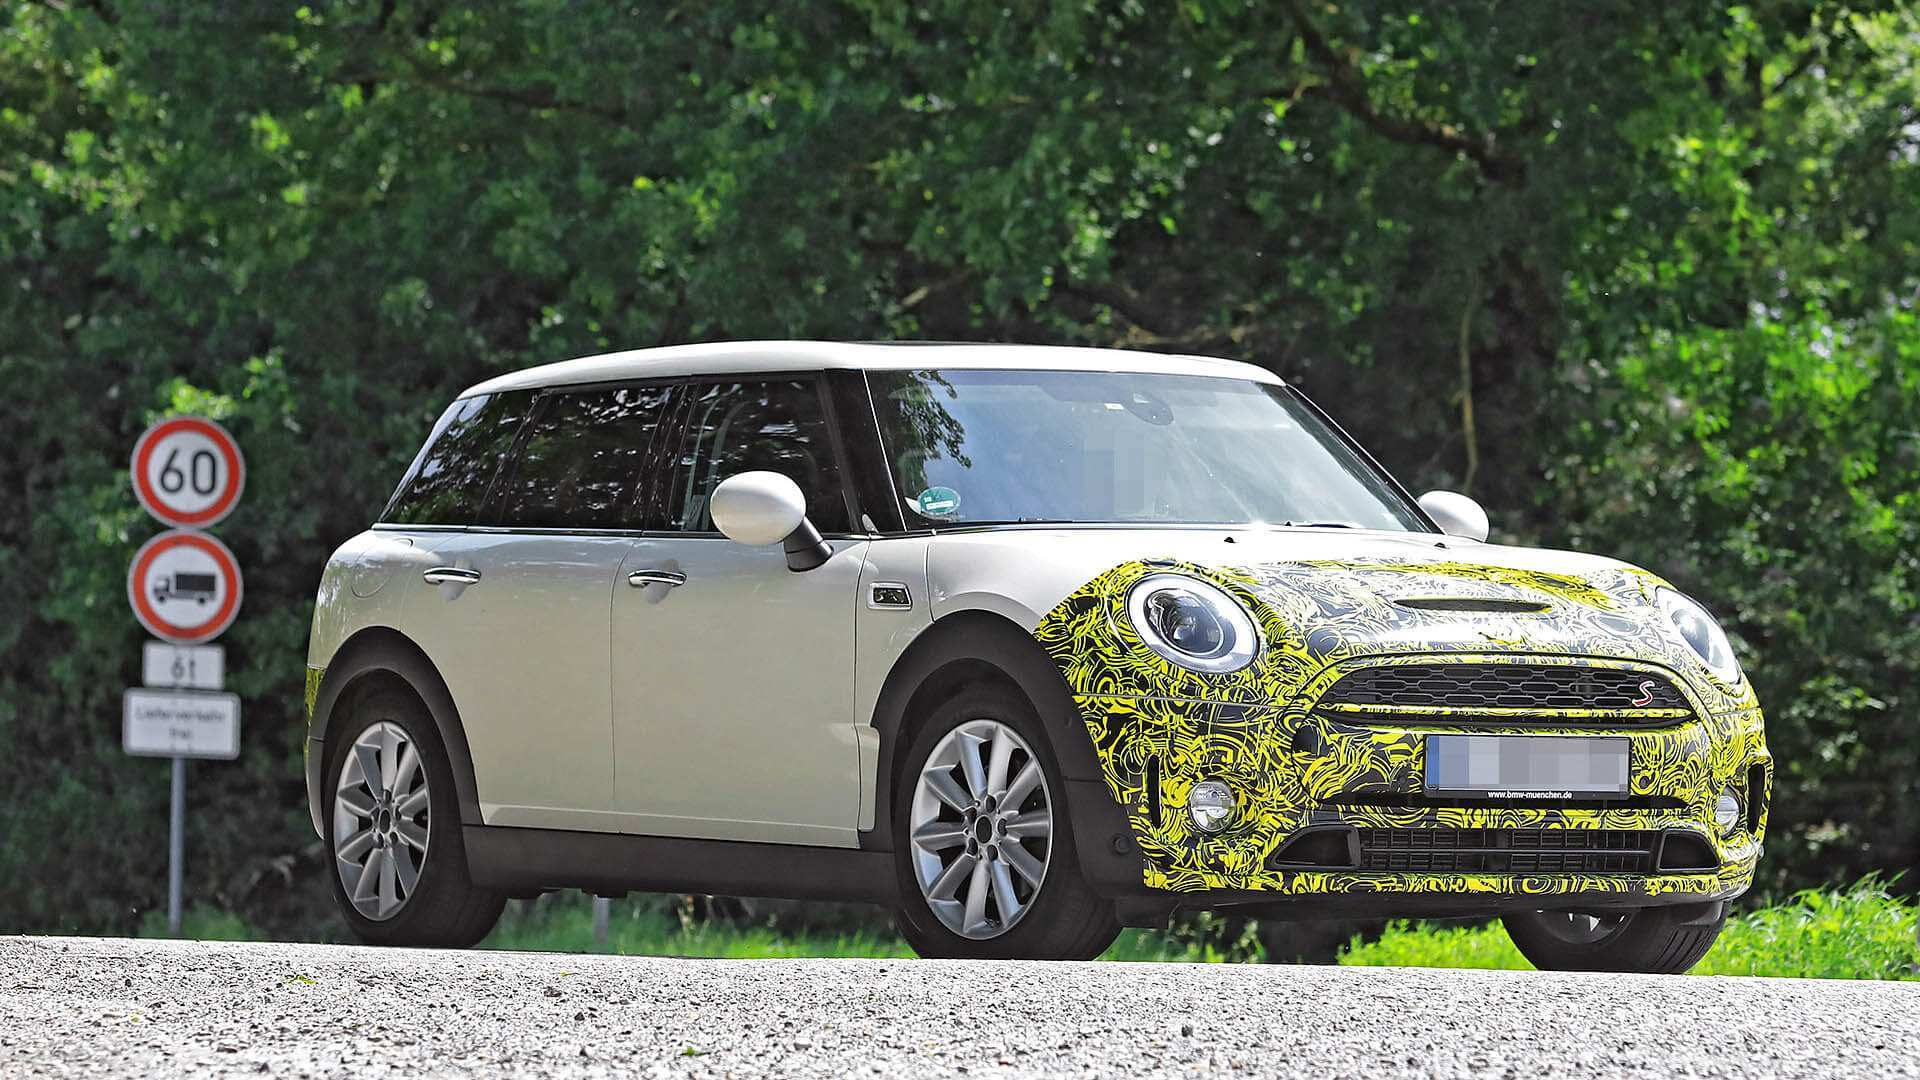 51 New Mini 2019 Facelift Price And Review